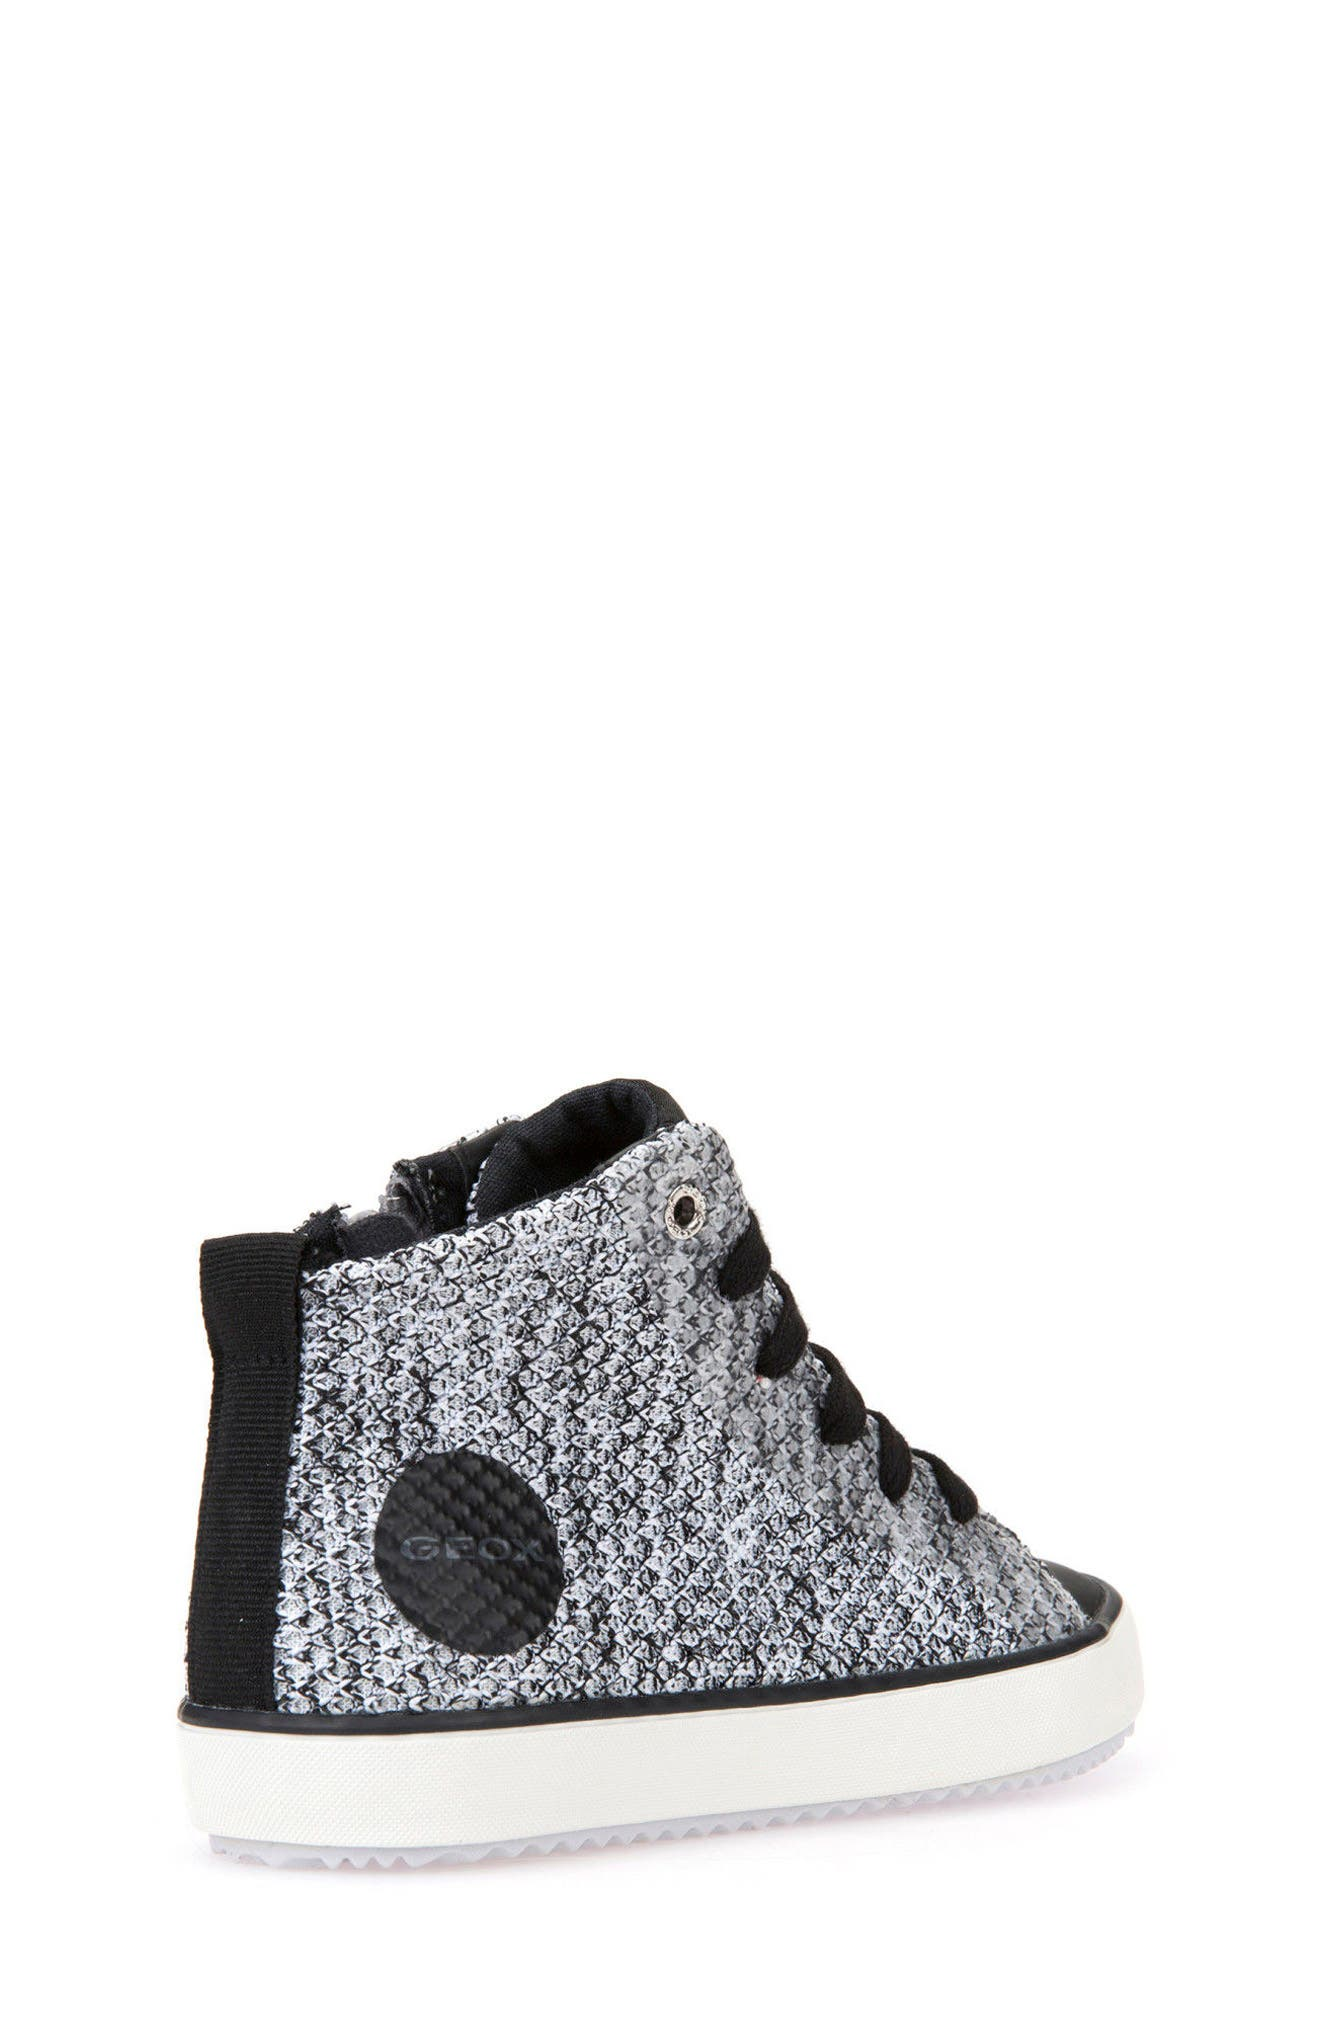 GEOX,                             Alonisso Knit Mid Top Sneaker,                             Alternate thumbnail 2, color,                             115